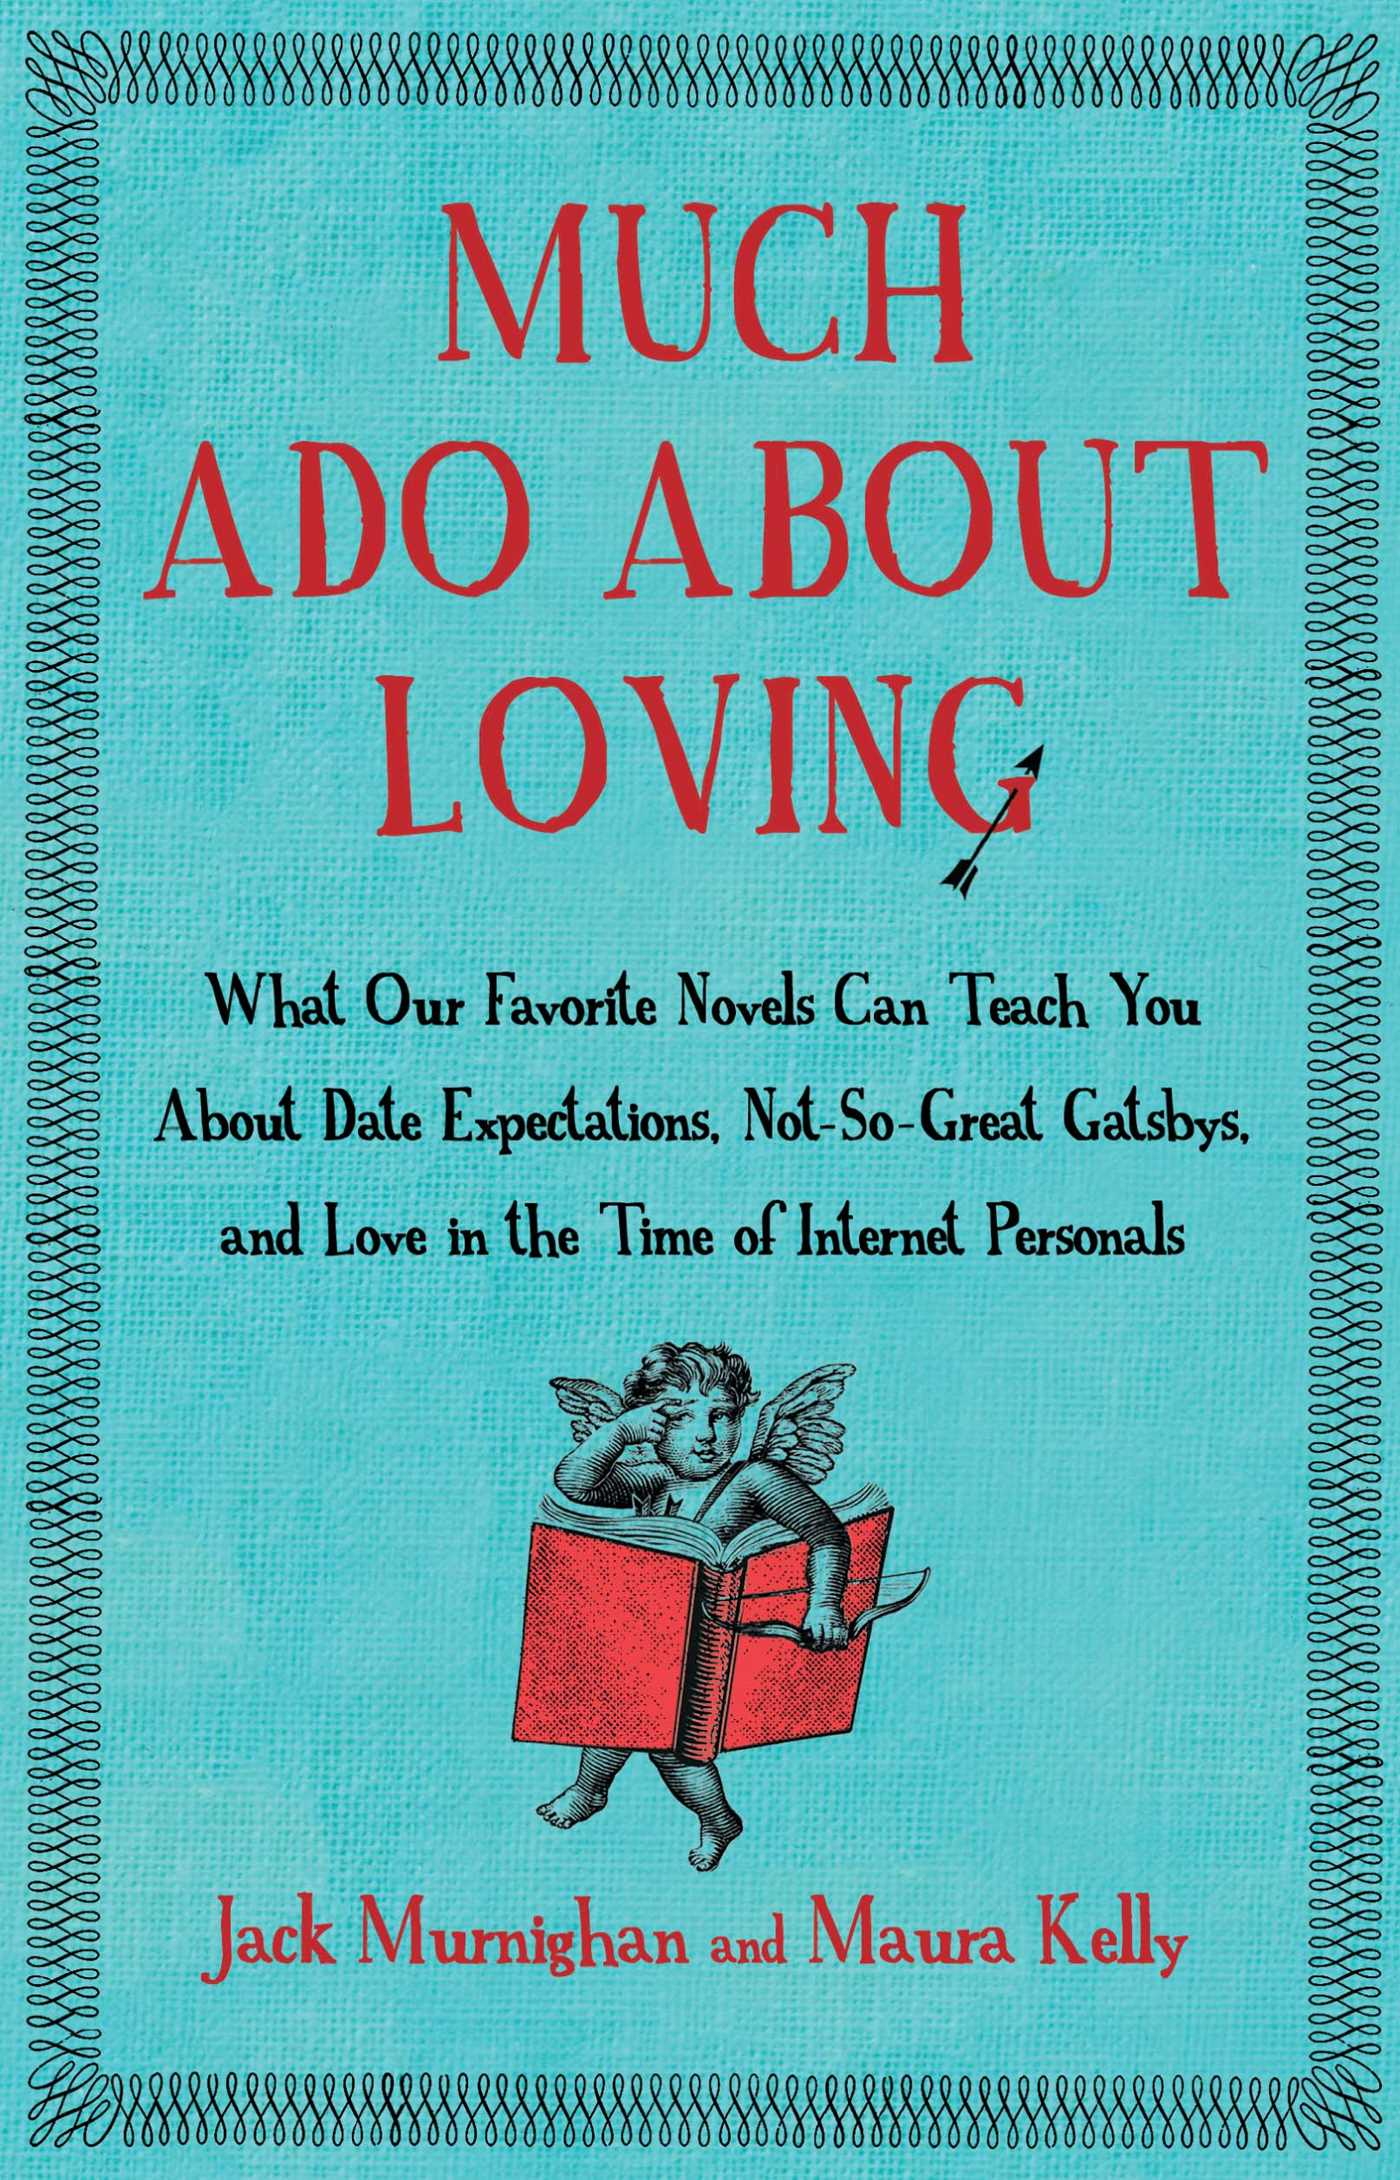 Much-ado-about-loving-9781451621259_hr